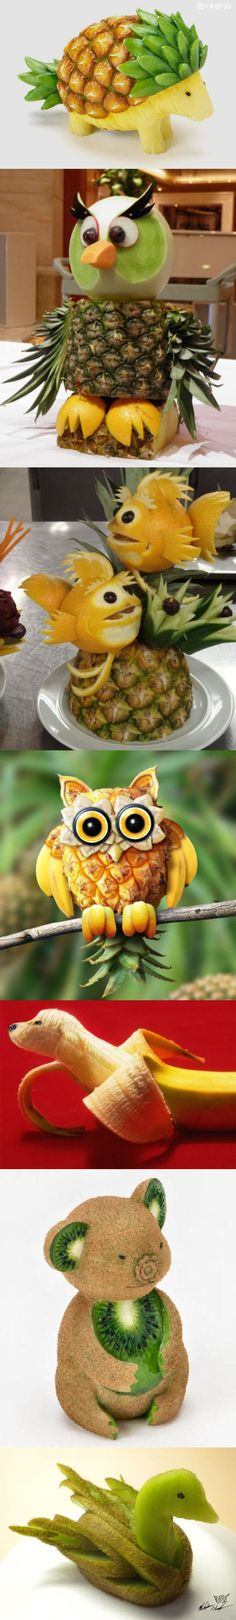 Animals made out of fruit...now that's a crafty food recipe!